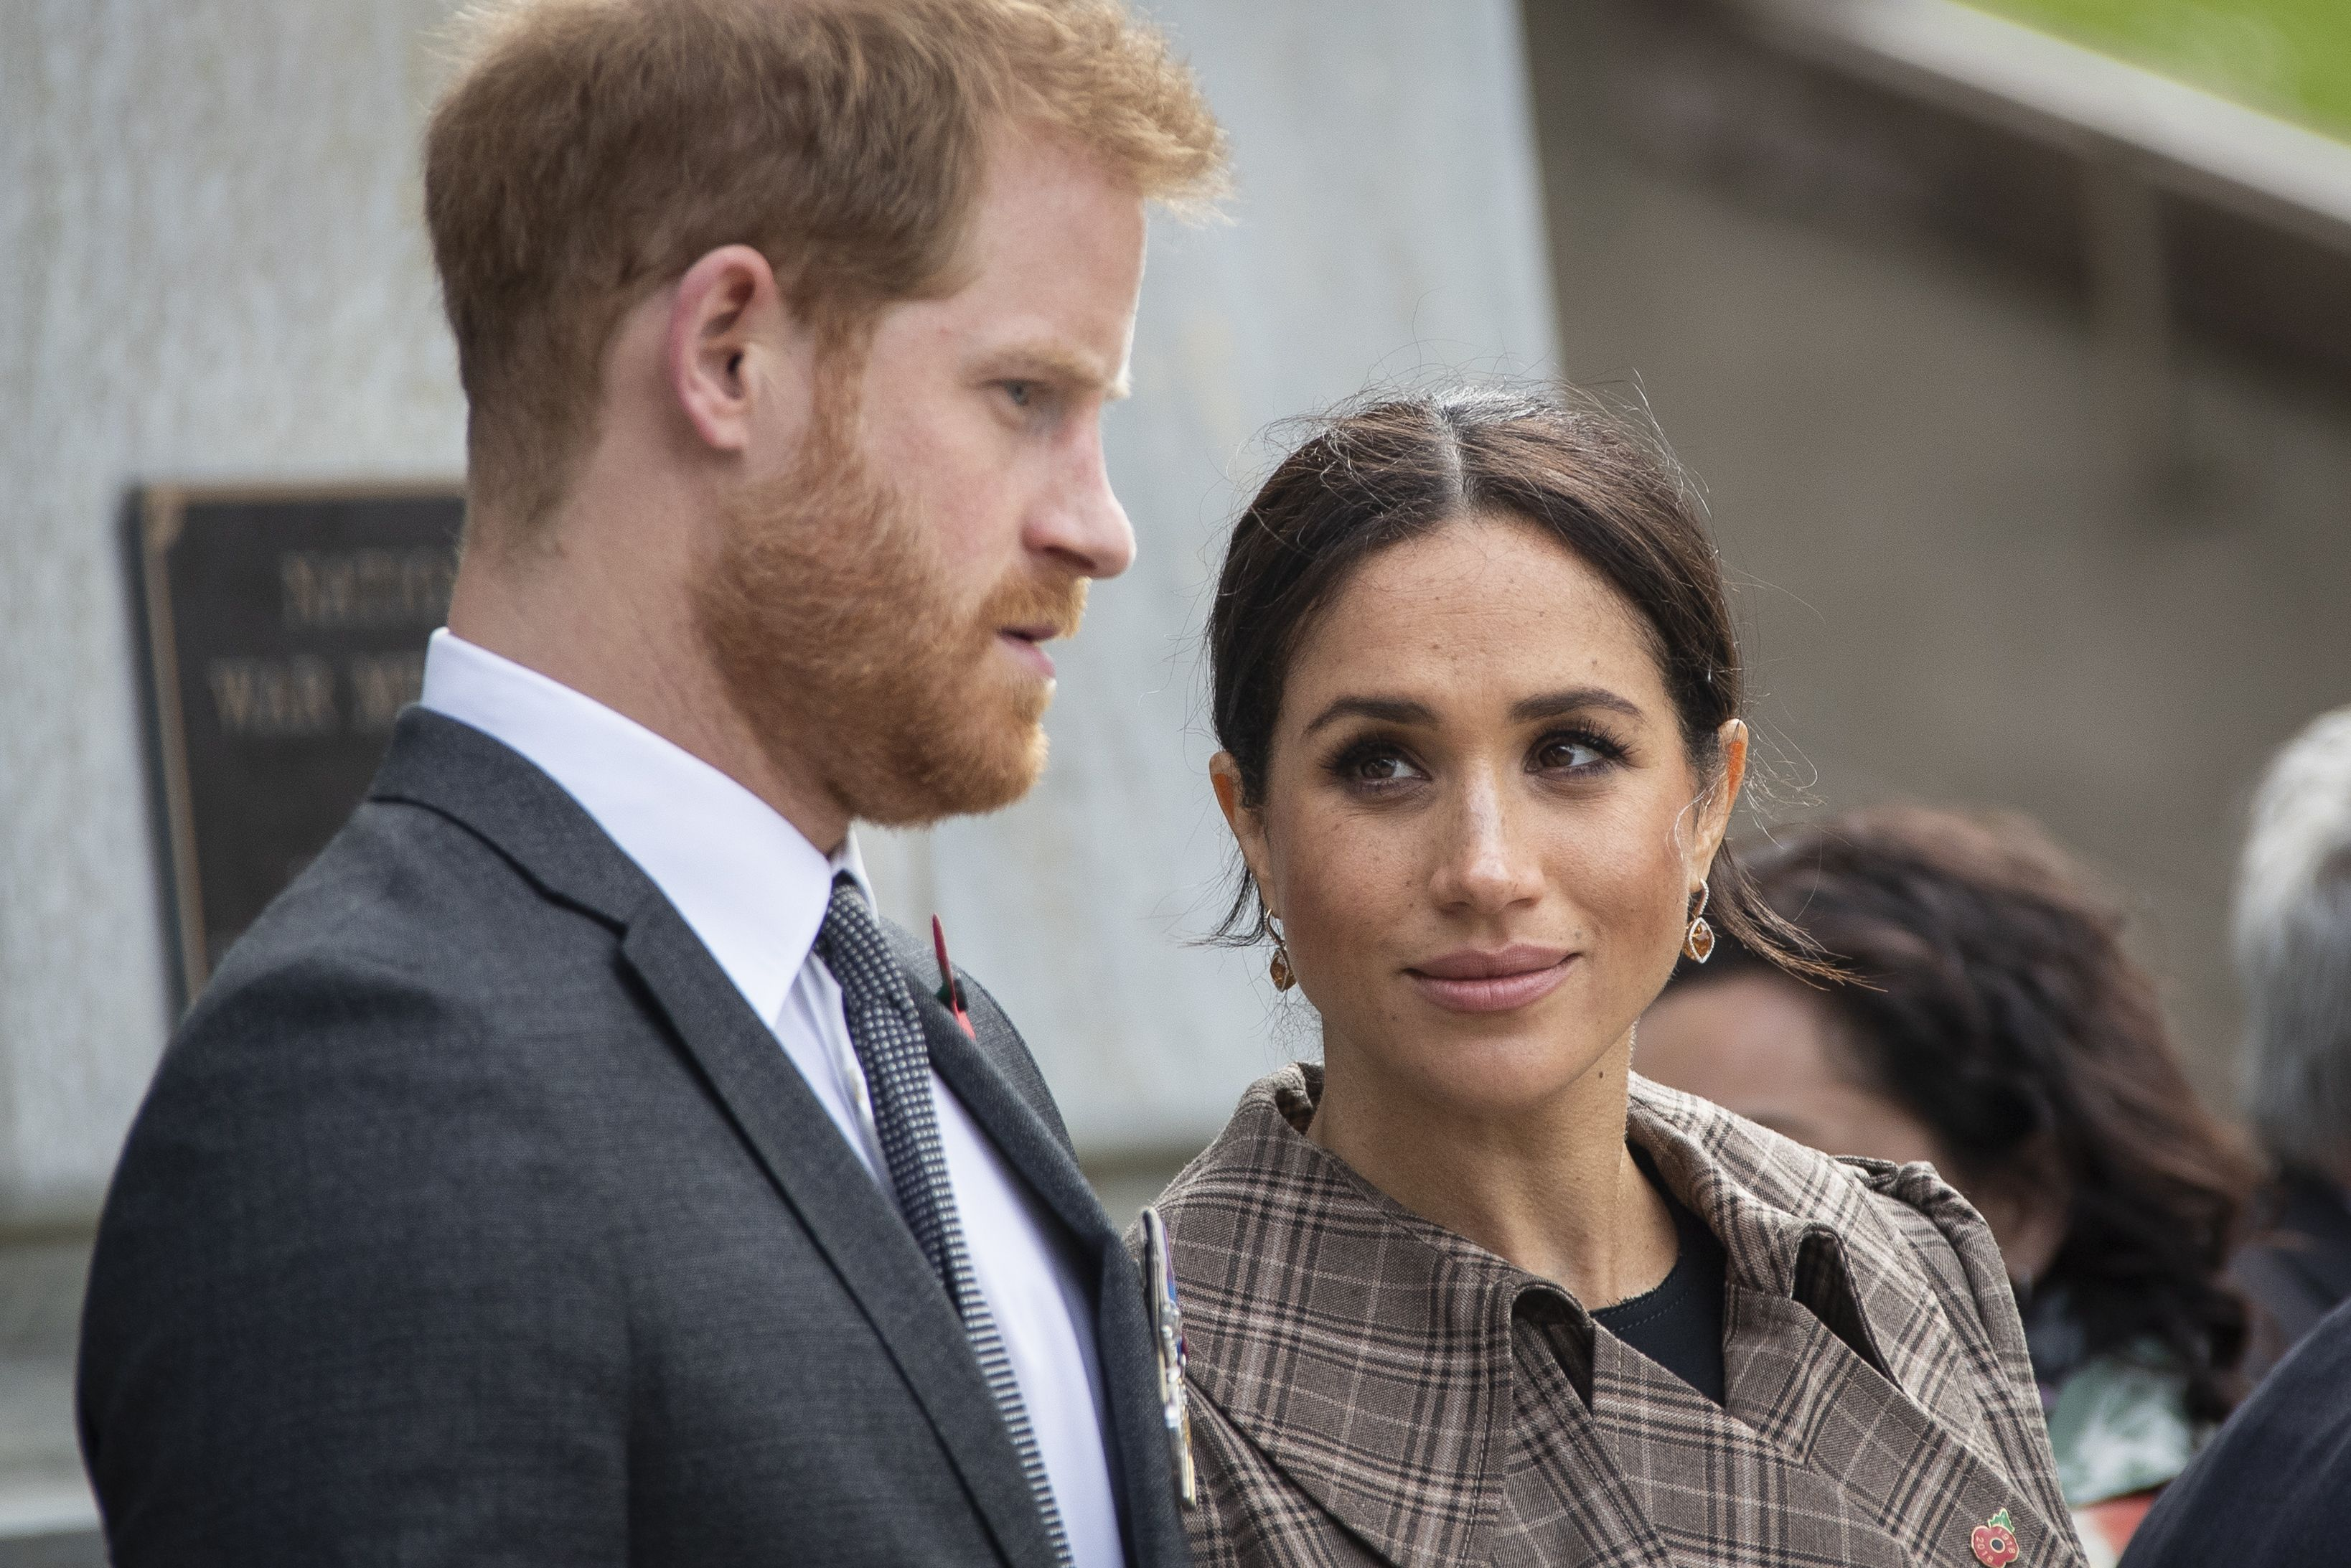 Prince Harry Condems the British Tabloids' Treatment of Meghan Markle in a Forceful Statement